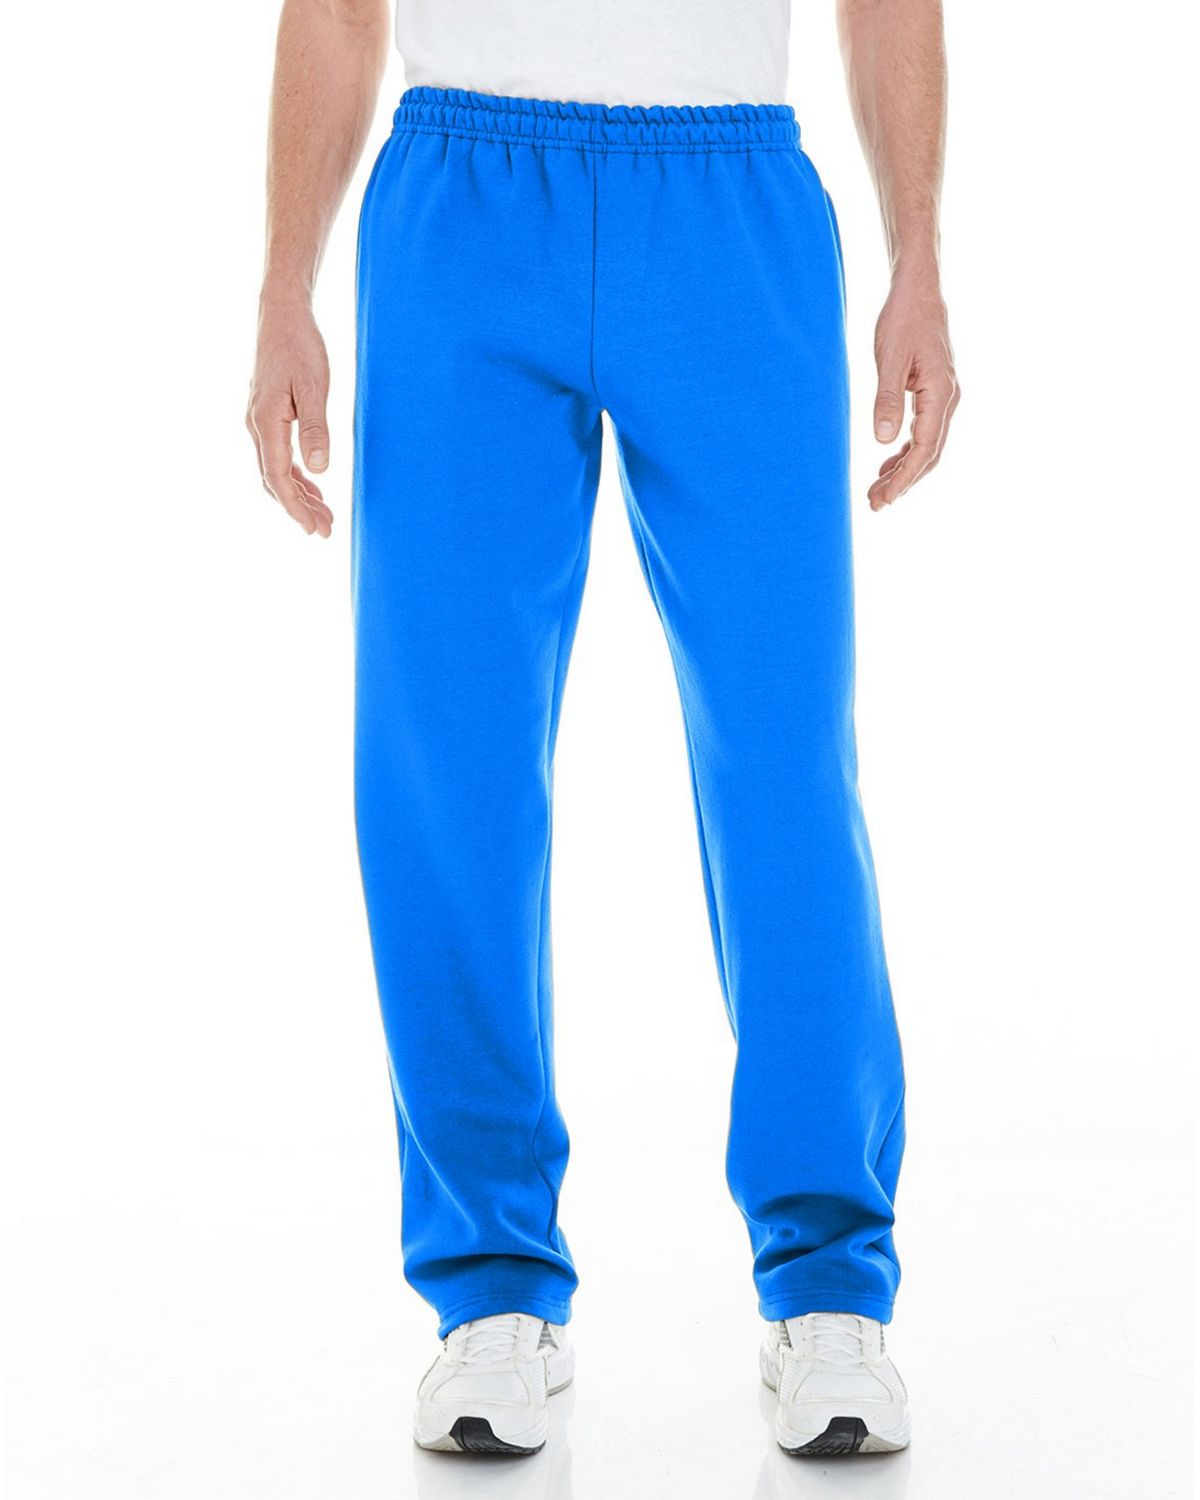 Gildan G18300 Heavy Blend Adult Sweatpants - Royal - 5X G18300